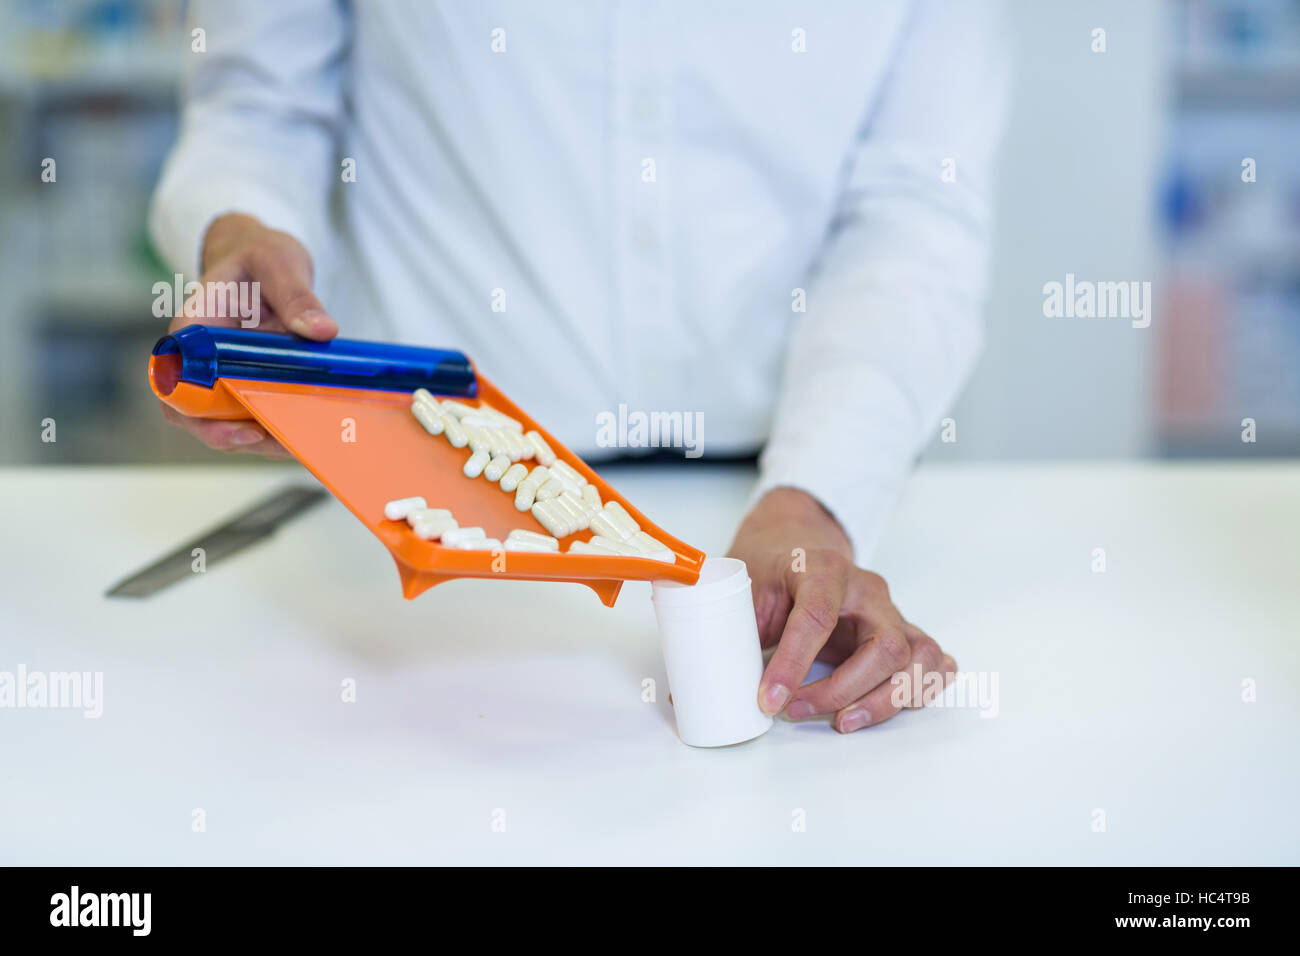 Pharmacist putting pill in container at pharmacy - Stock Image